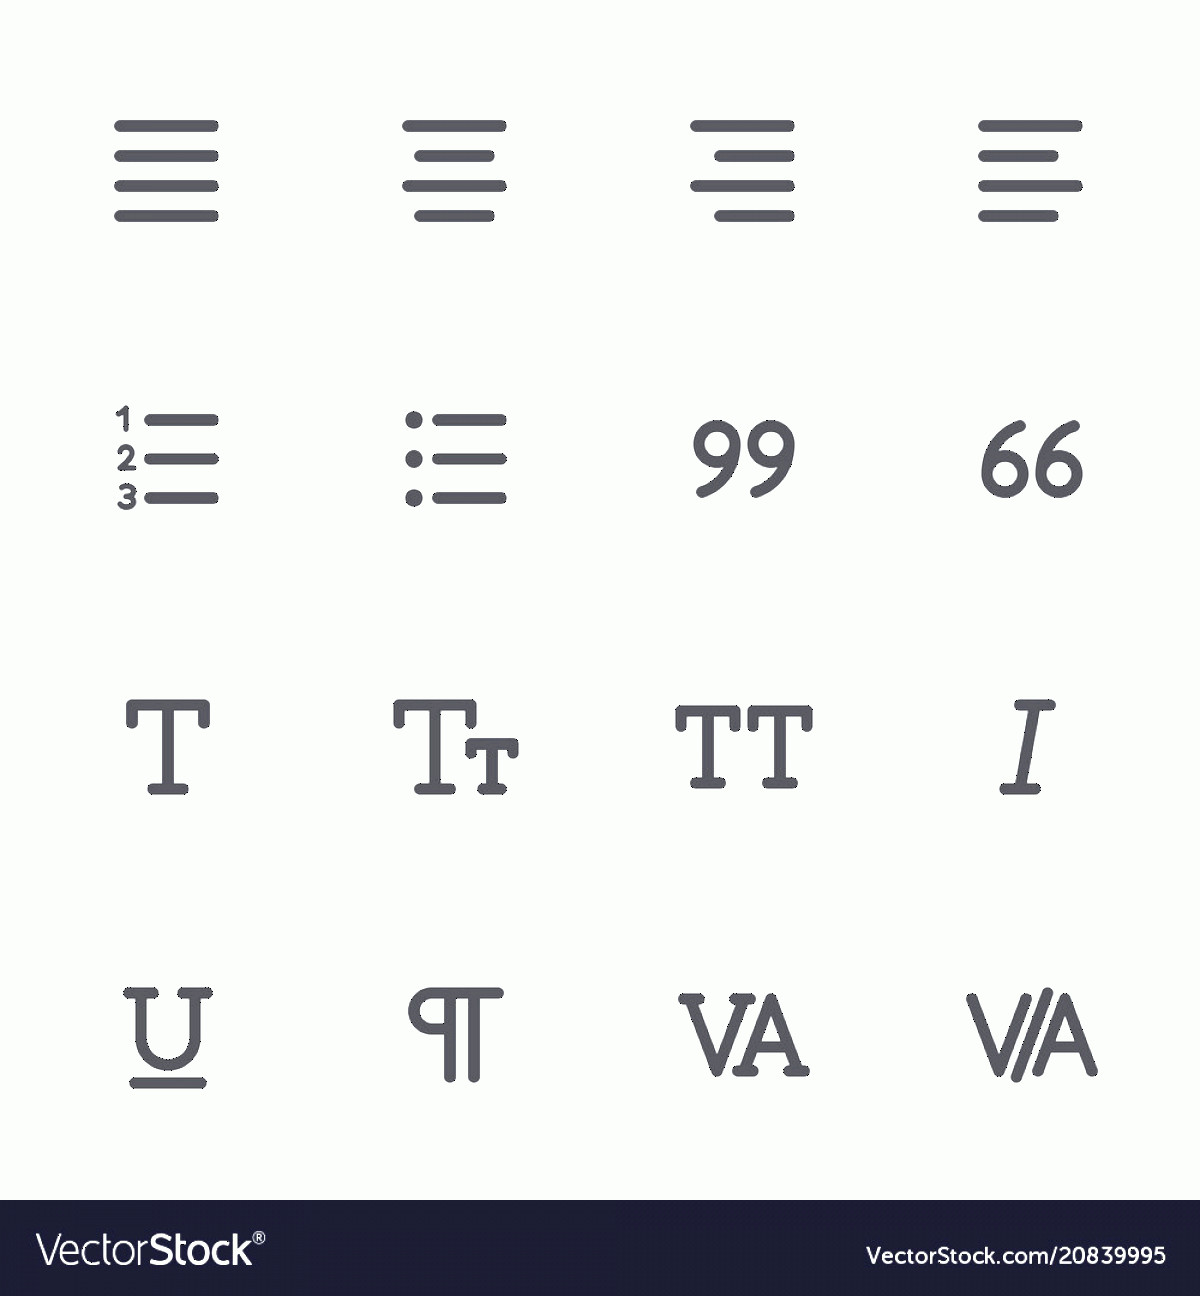 Editors Symbols In Vector: Outline Icons For Web And Mobile Text Editor Vector